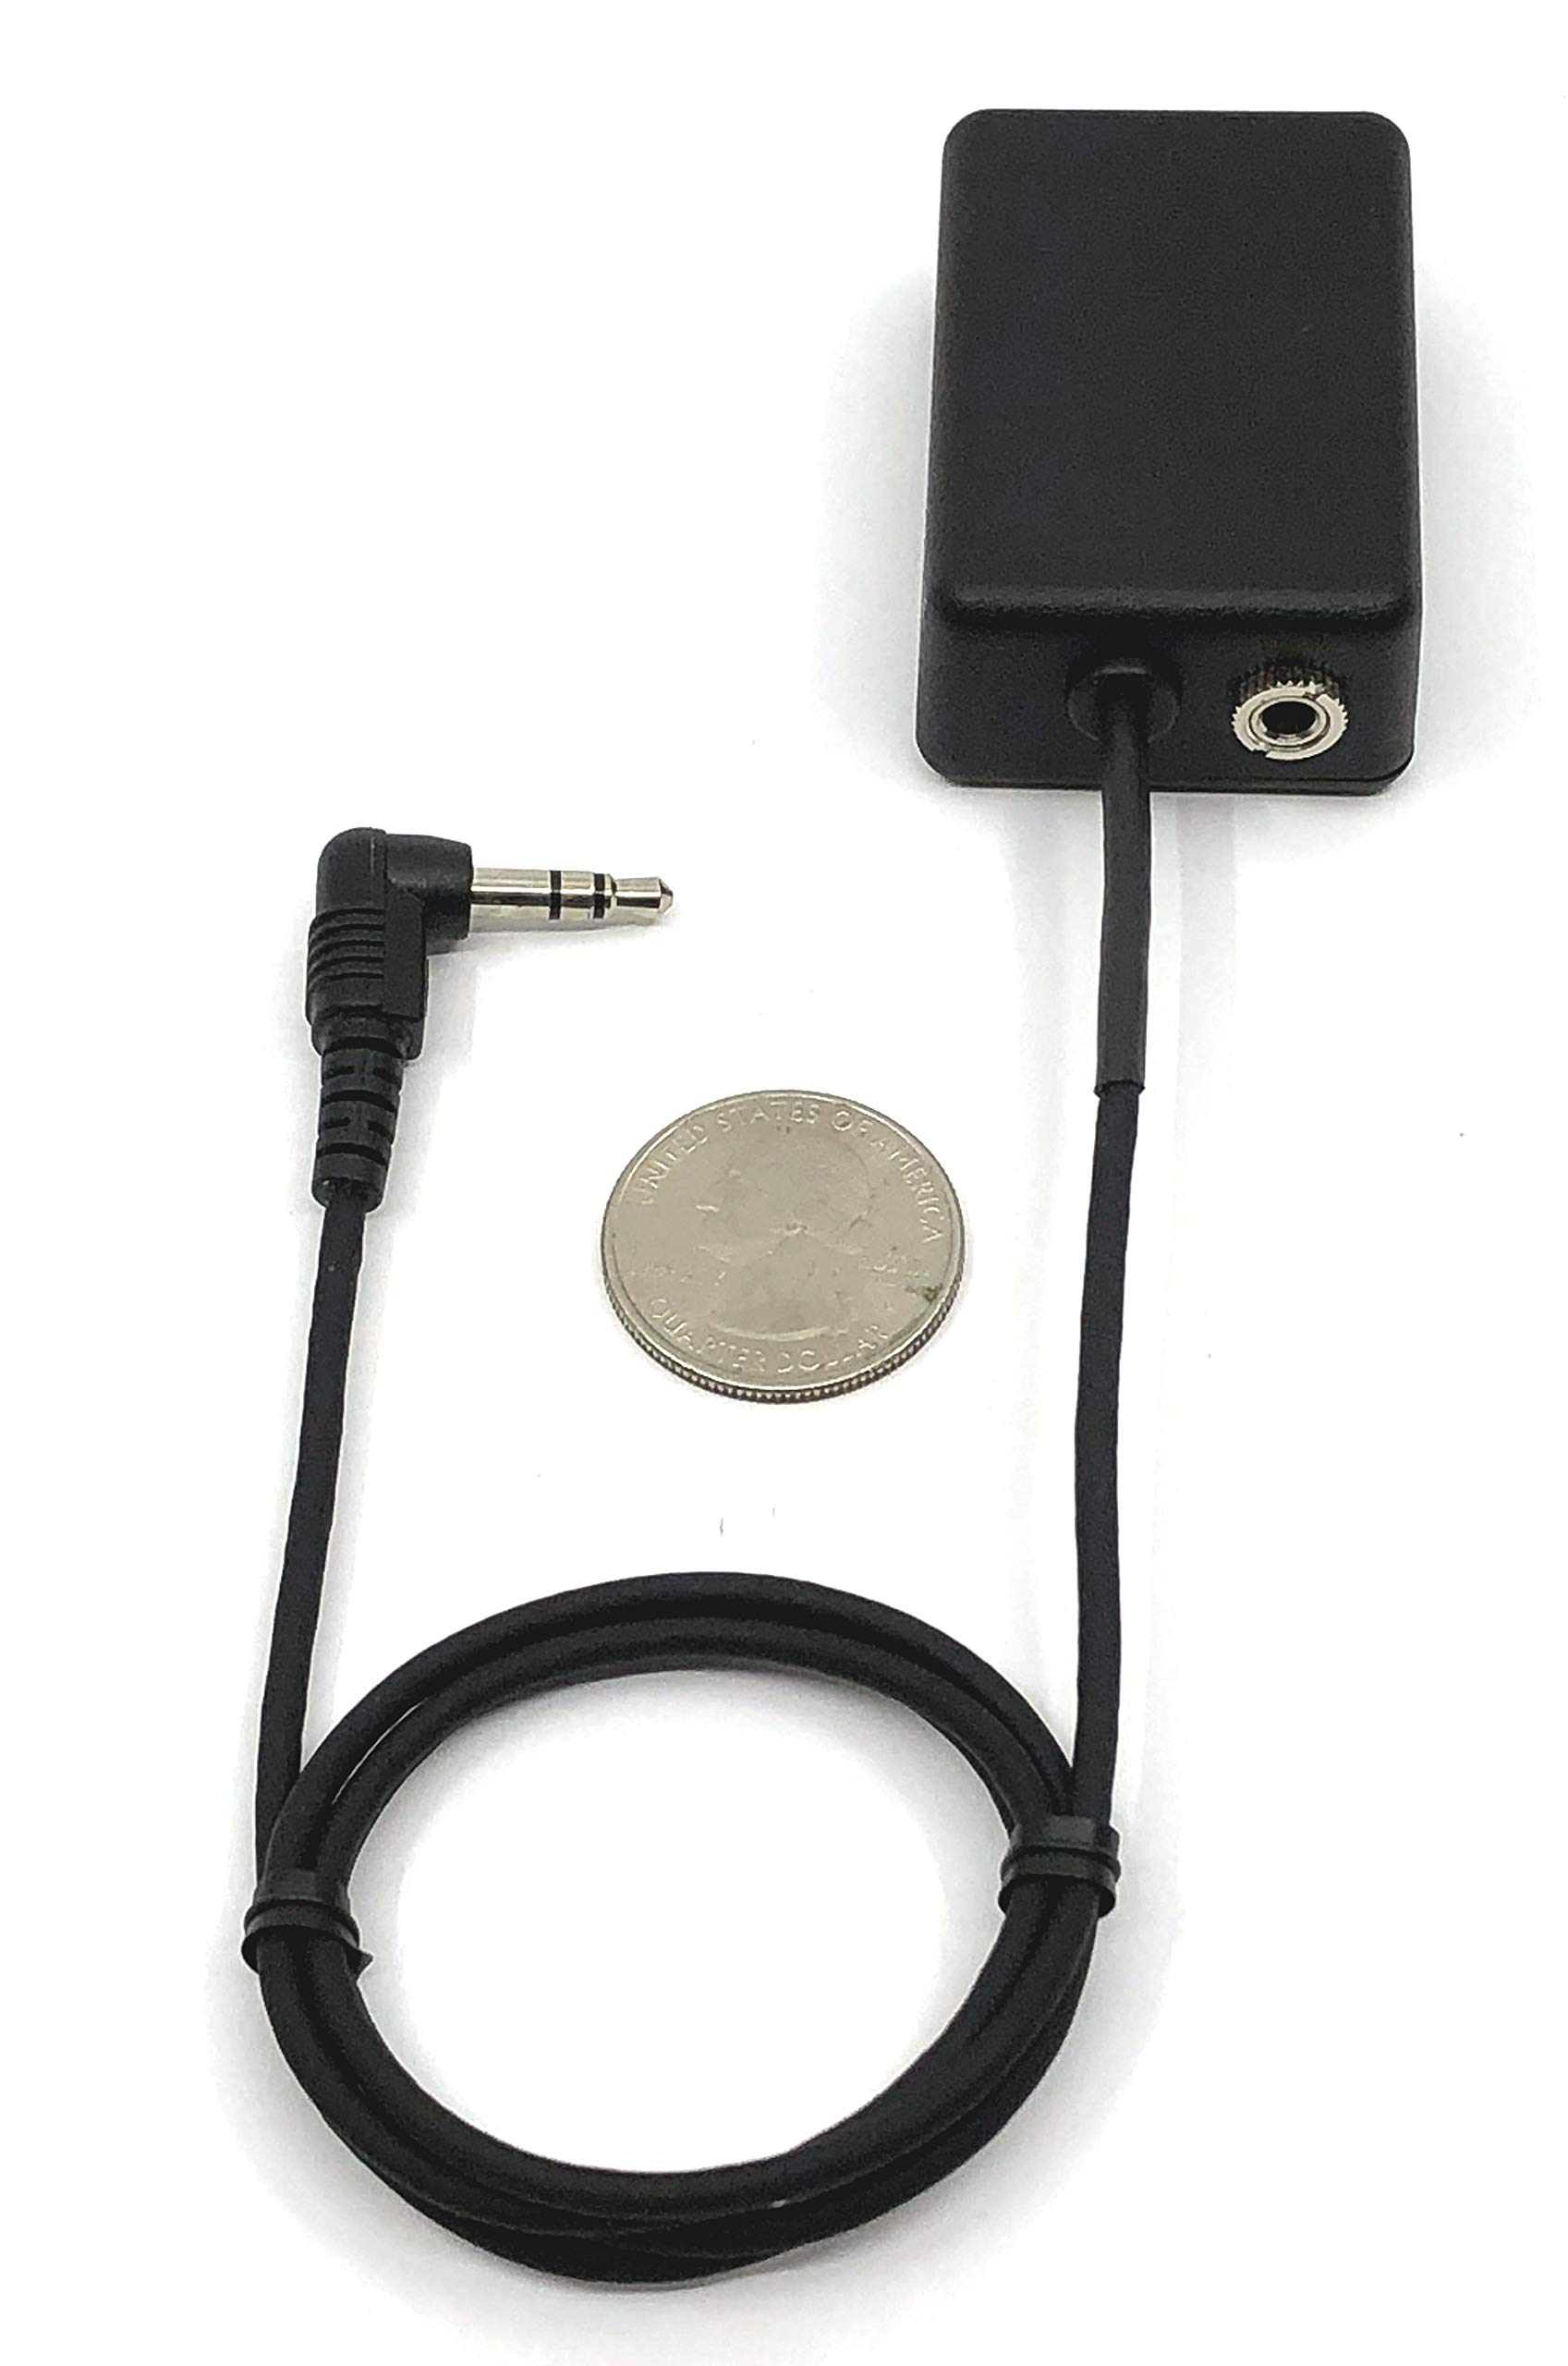 SP-SPSB-10-13004 - Sound Professionals Micro-mini Microphone Power Supply by Sound Professionals